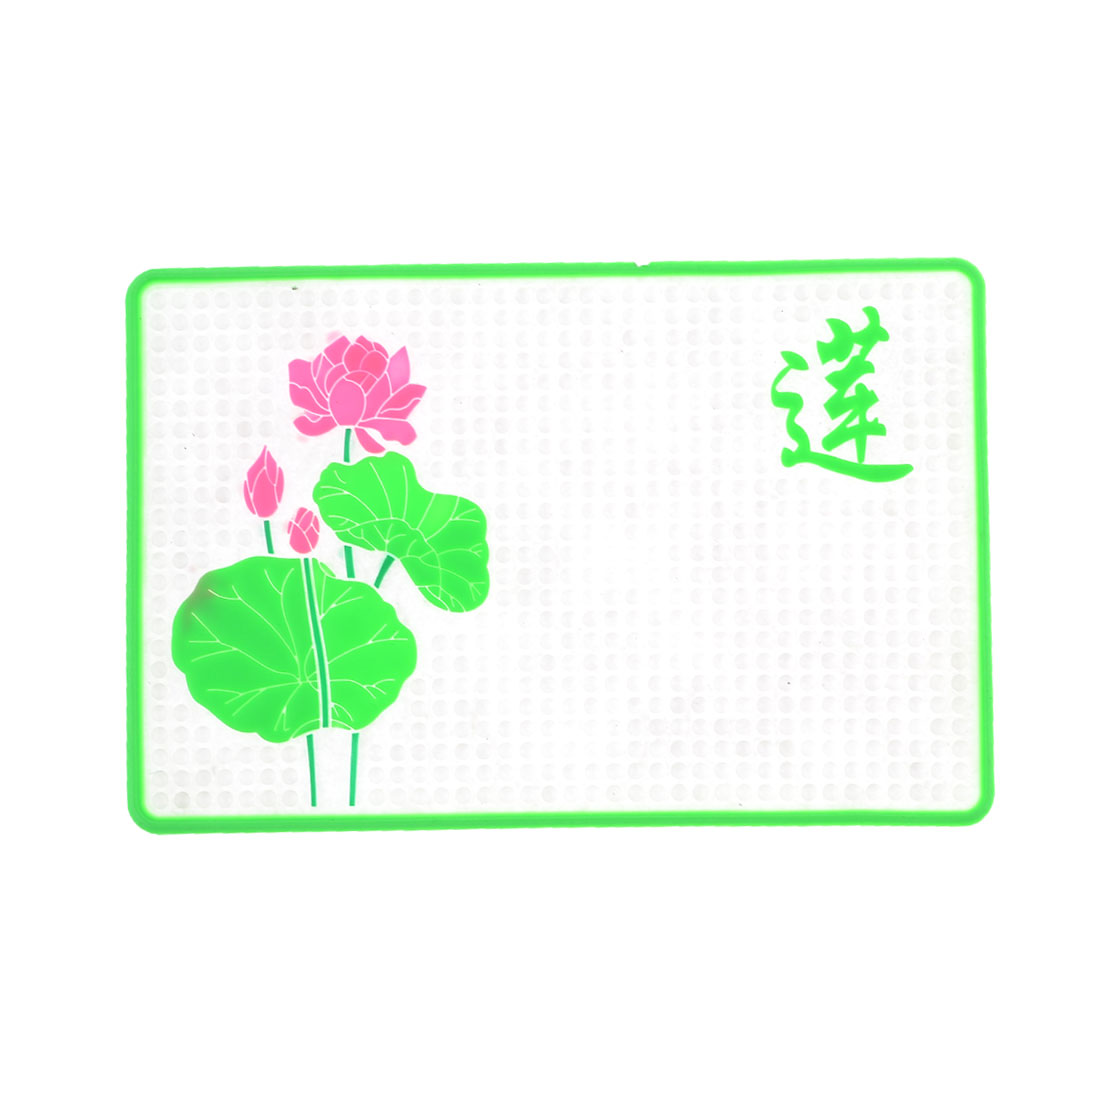 Car Green Lotus Flower Rectangle Clear Nonslip Dotted Silicone Pad Mat Cushion